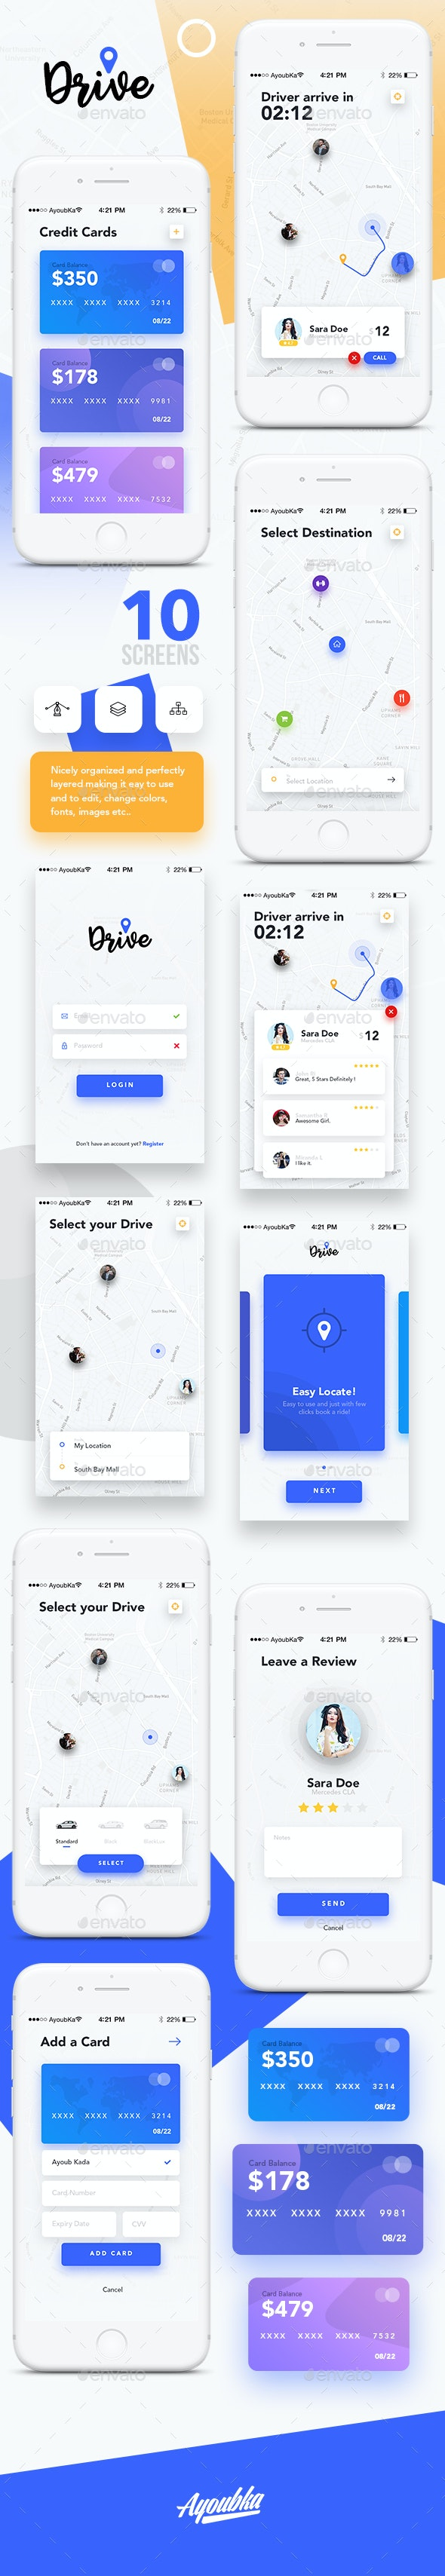 Drive - Mobile App UI Kit Design by Ayoubk | GraphicRiver